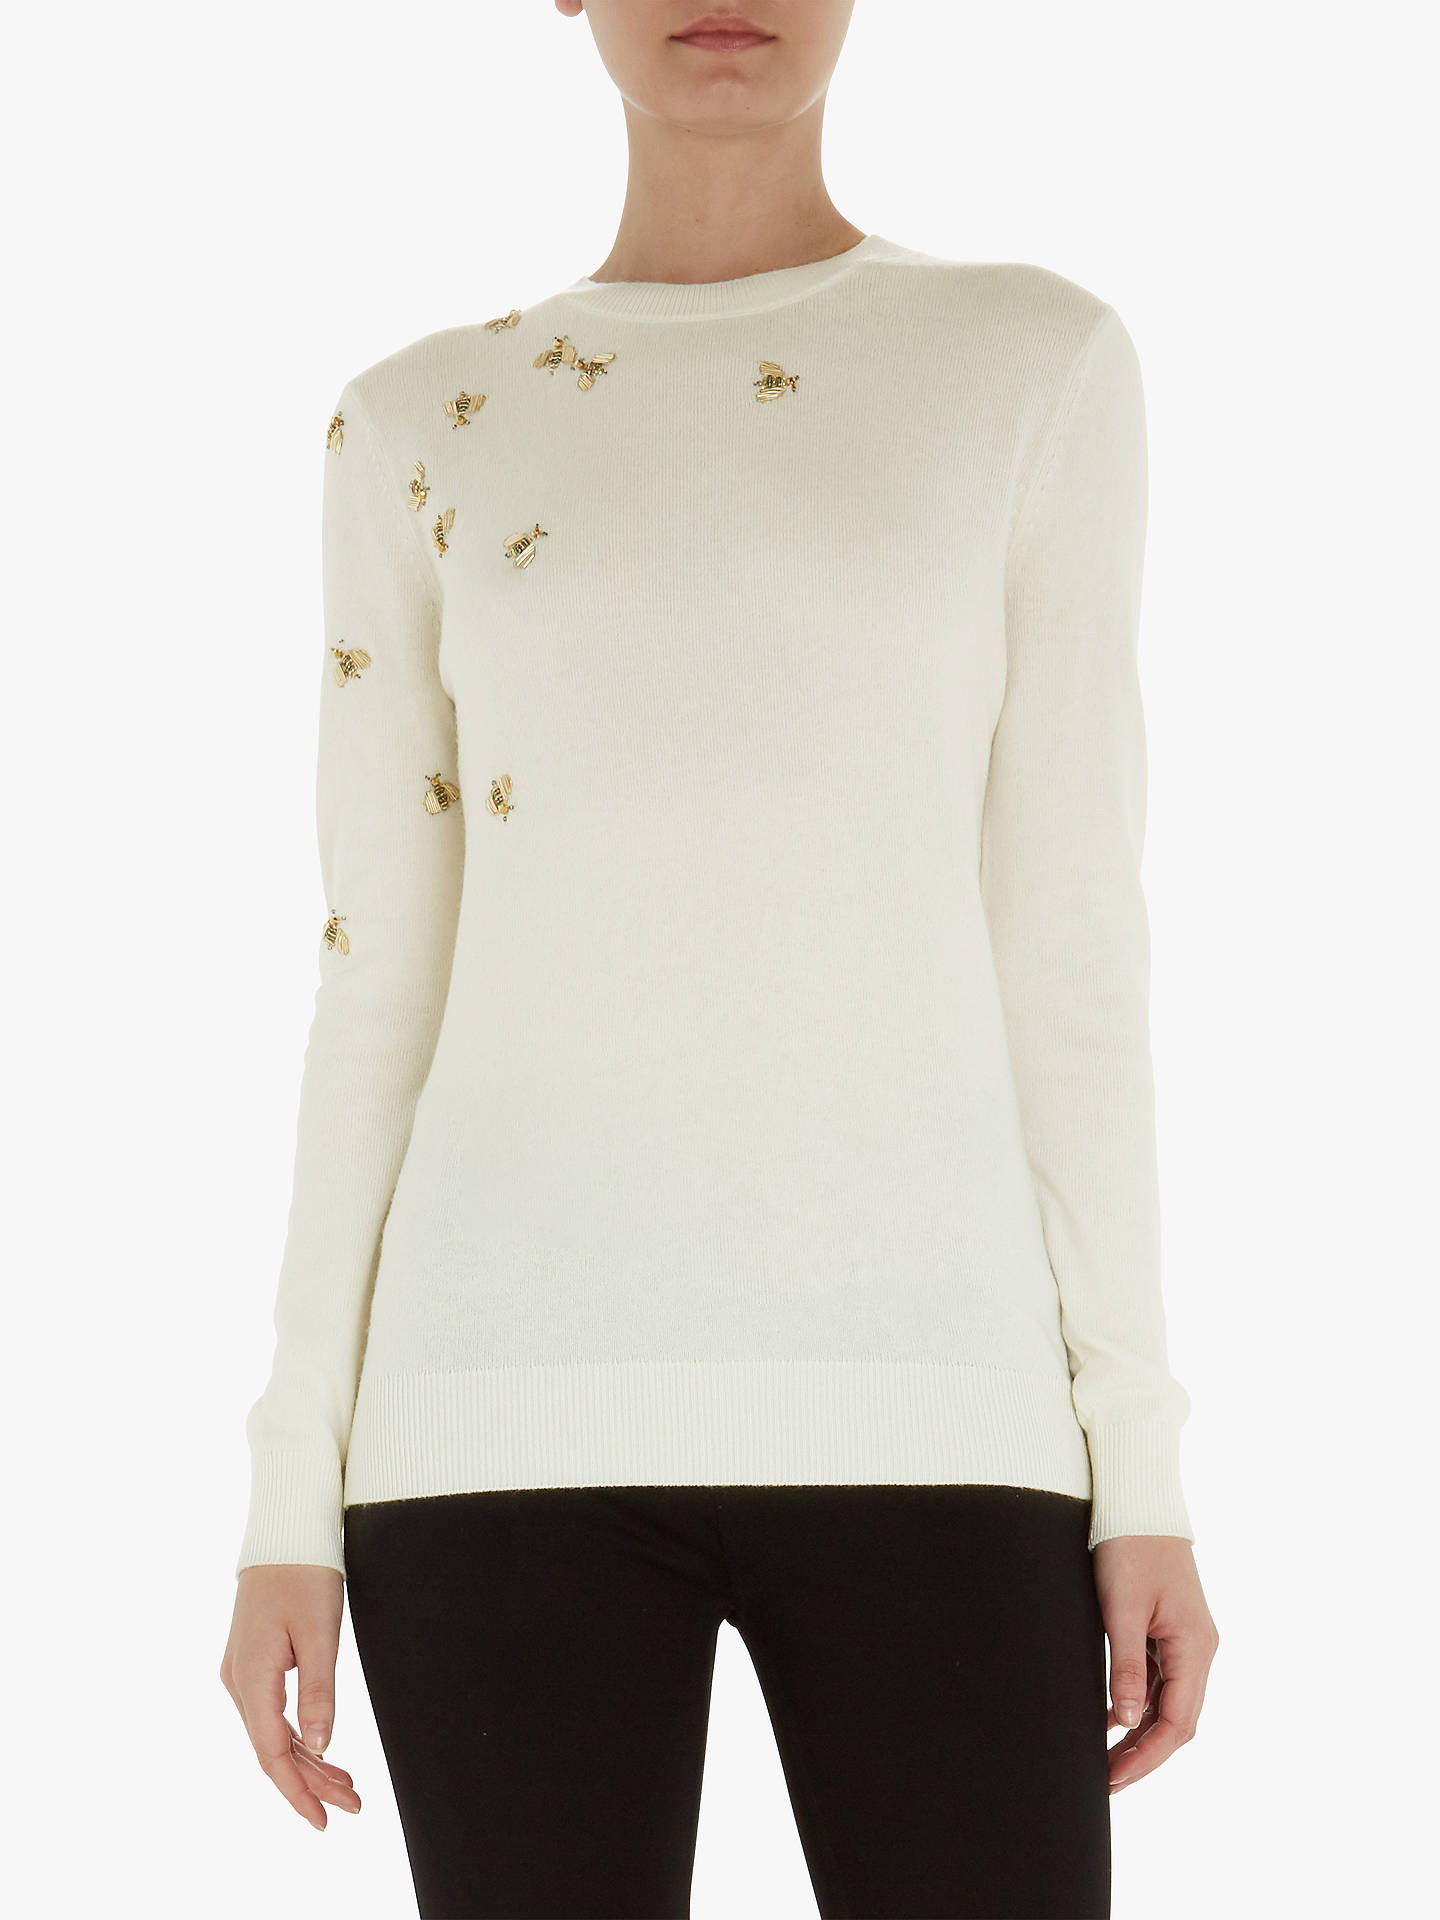 BuyTed Baker Calliee Bee Embellished Jumper, White, M Online at johnlewis.com